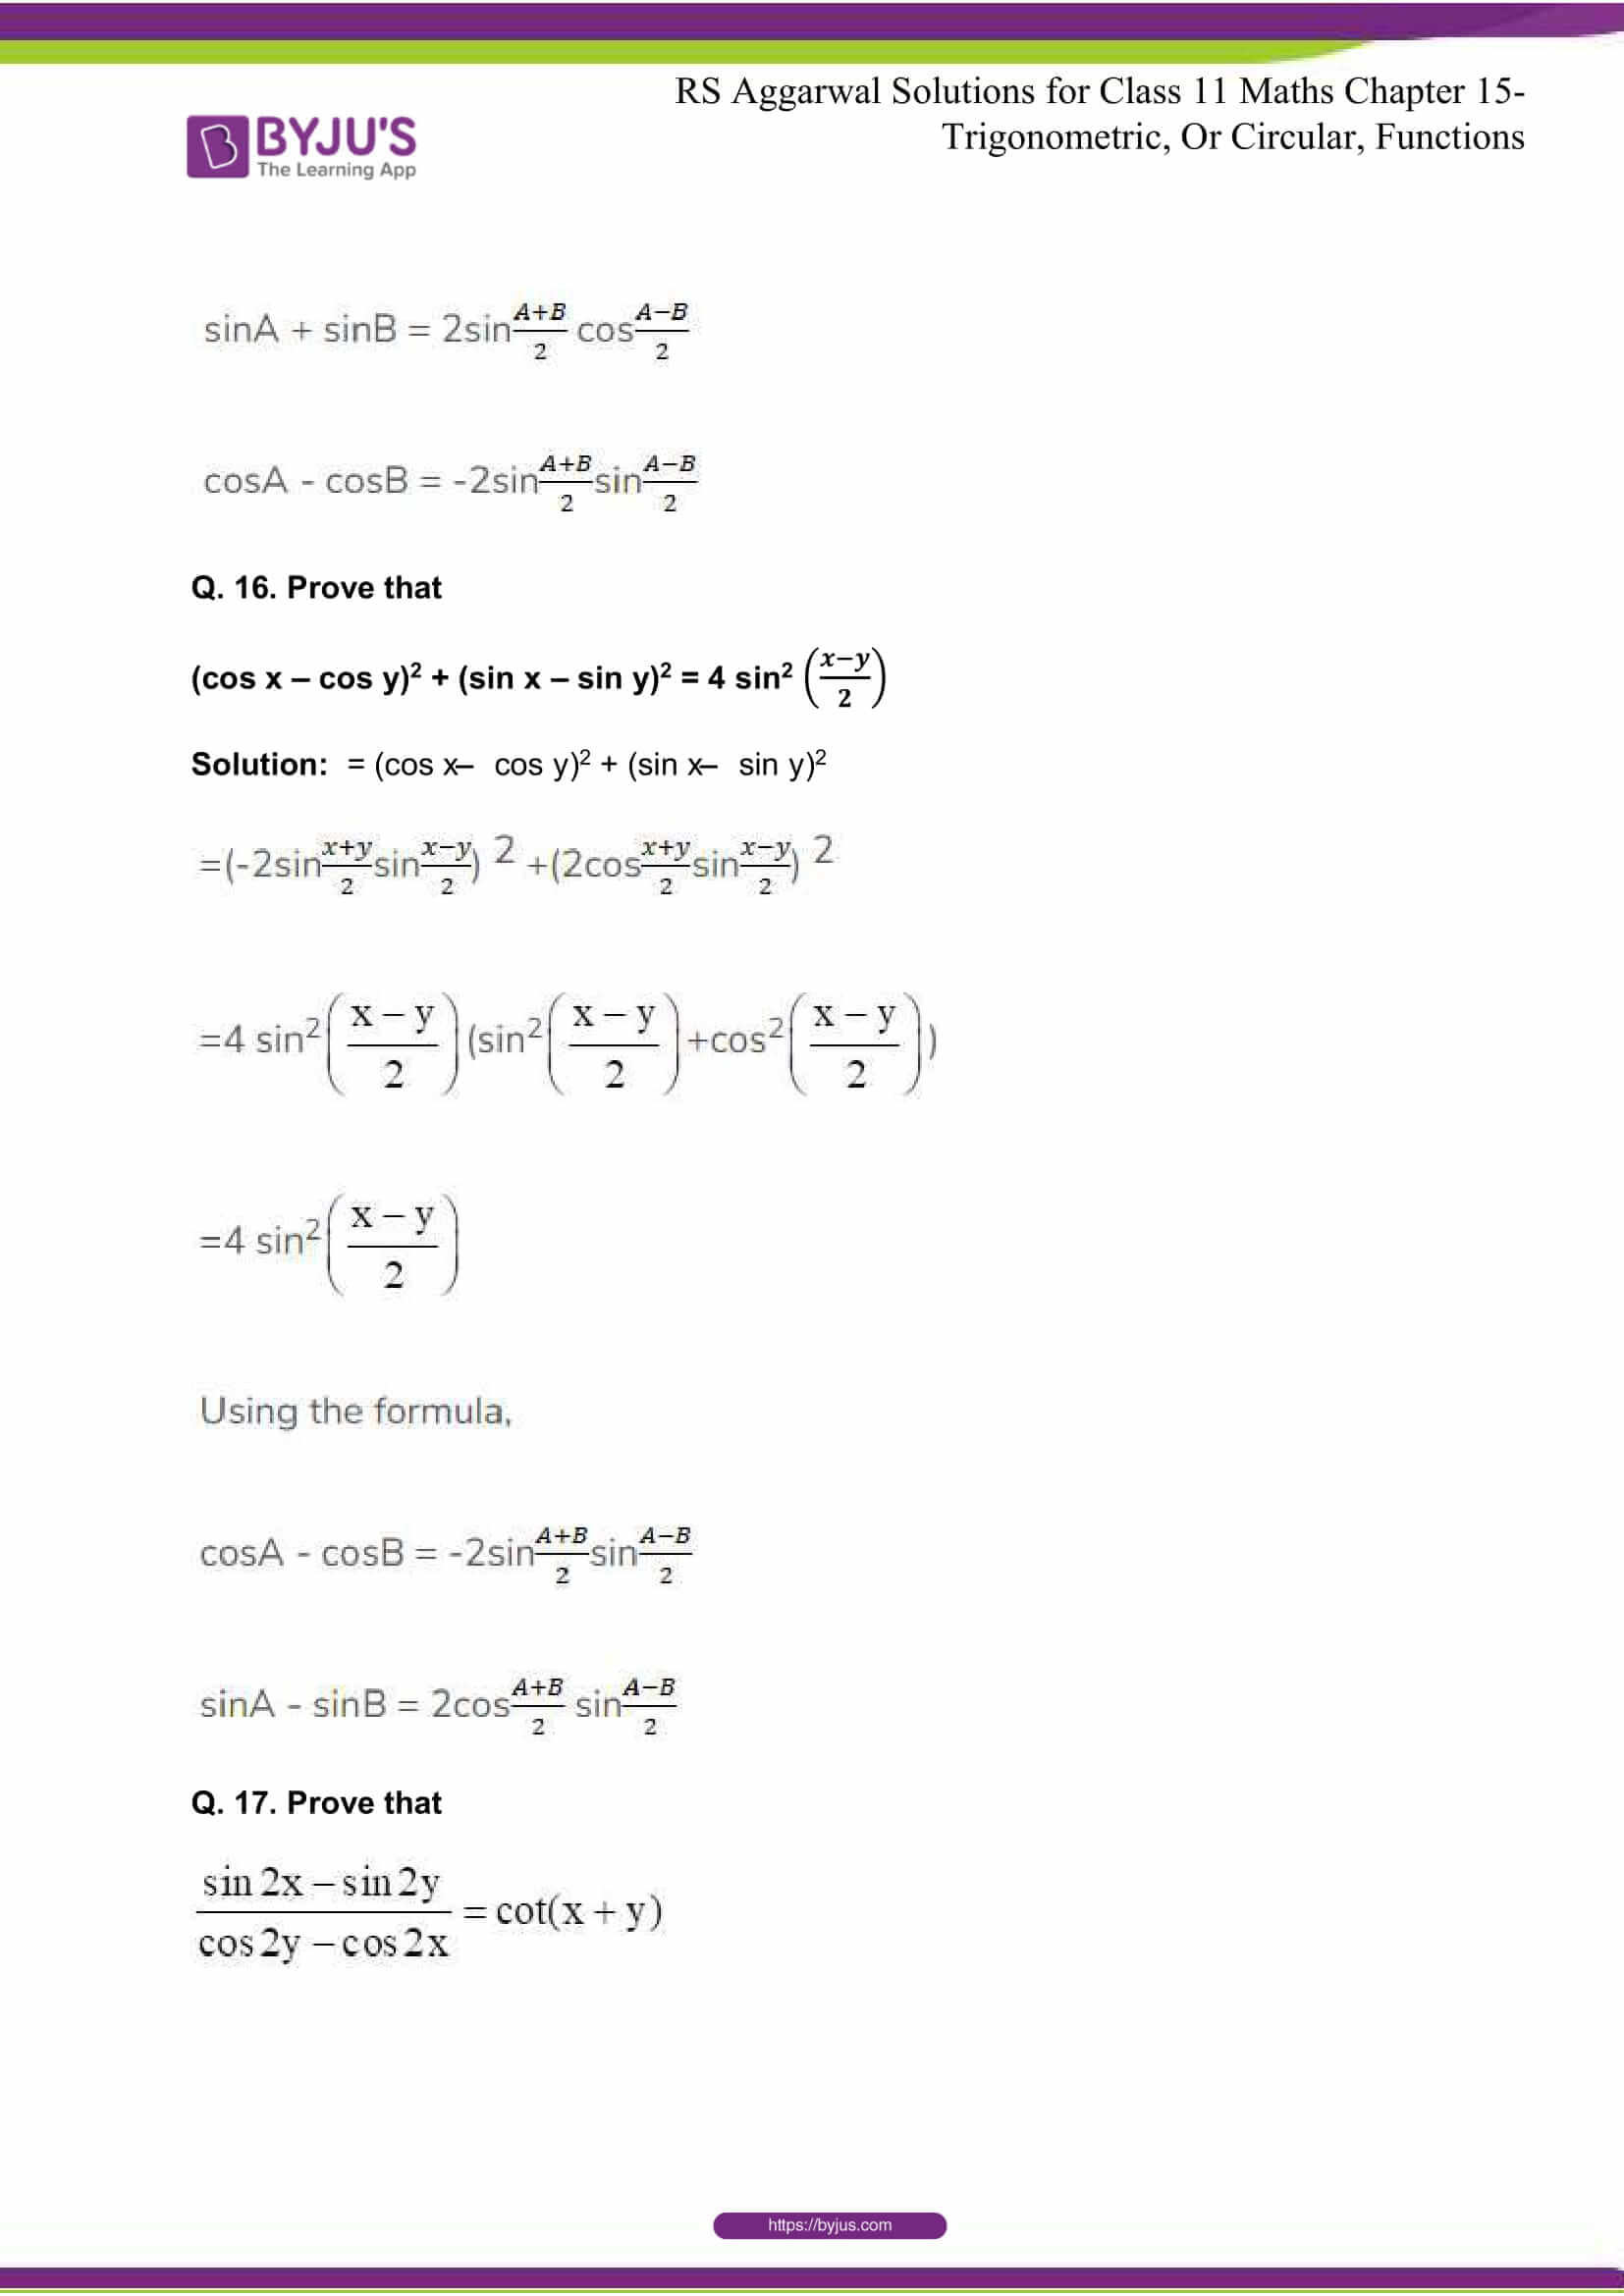 rsaggarwal solutions class 11 maths chapter 15 064